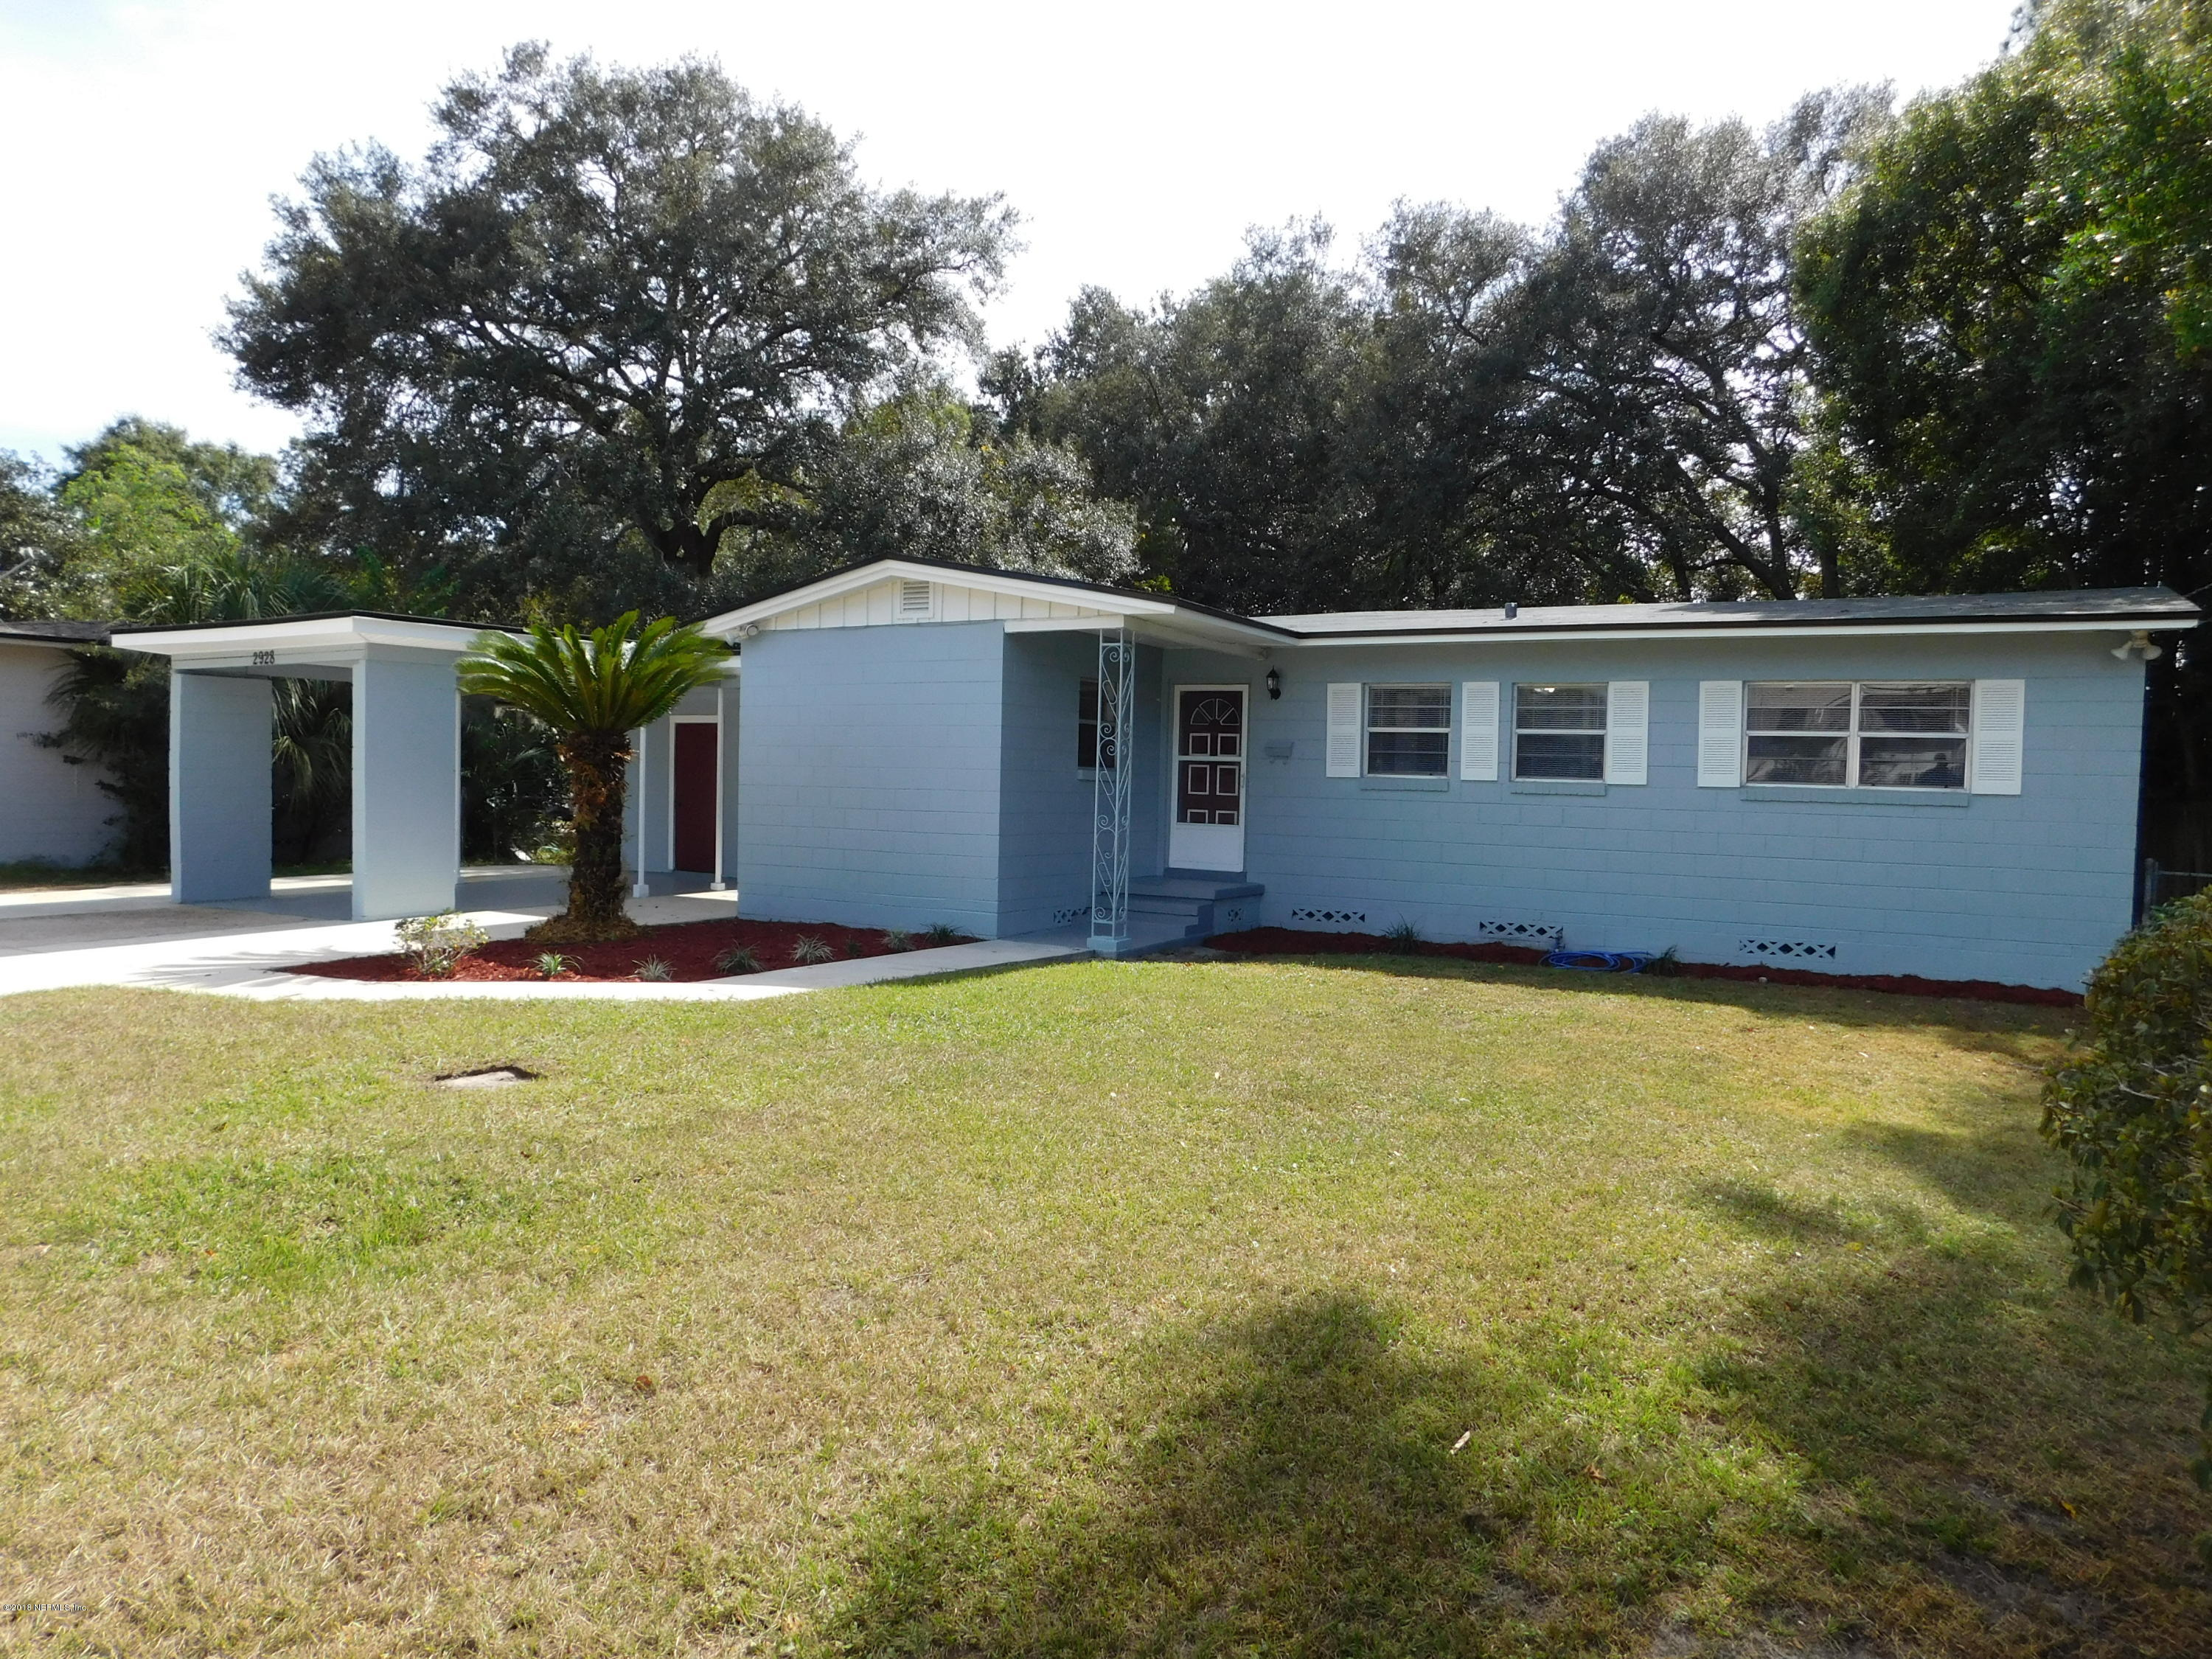 2928 Van Gundy, JACKSONVILLE, FLORIDA 32208, 3 Bedrooms Bedrooms, ,1 BathroomBathrooms,Residential - single family,For sale,Van Gundy,965306